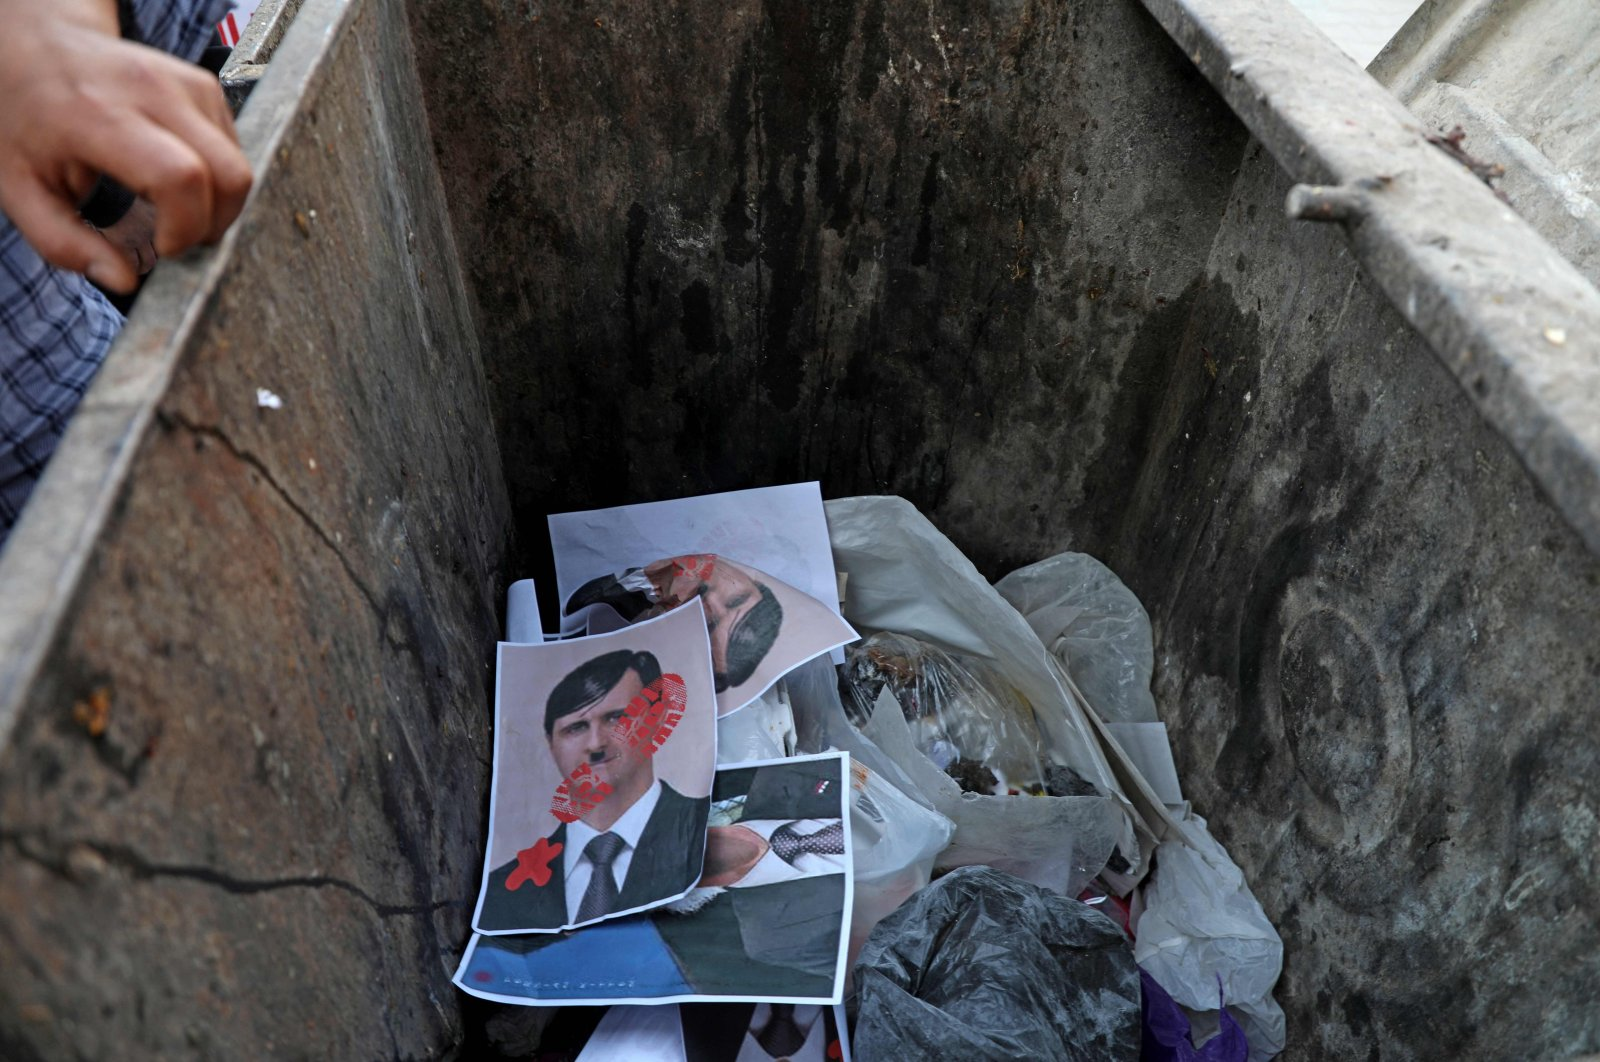 Syrians throw posters depicting Bashar Assad as Adolf Hitler in a garbage bin symbolizing a ballot box in the town of Dana, east of the Turkish-Syrian border in Idlib province, northwestern Syria, May 24, 2021. (AFP Photo)